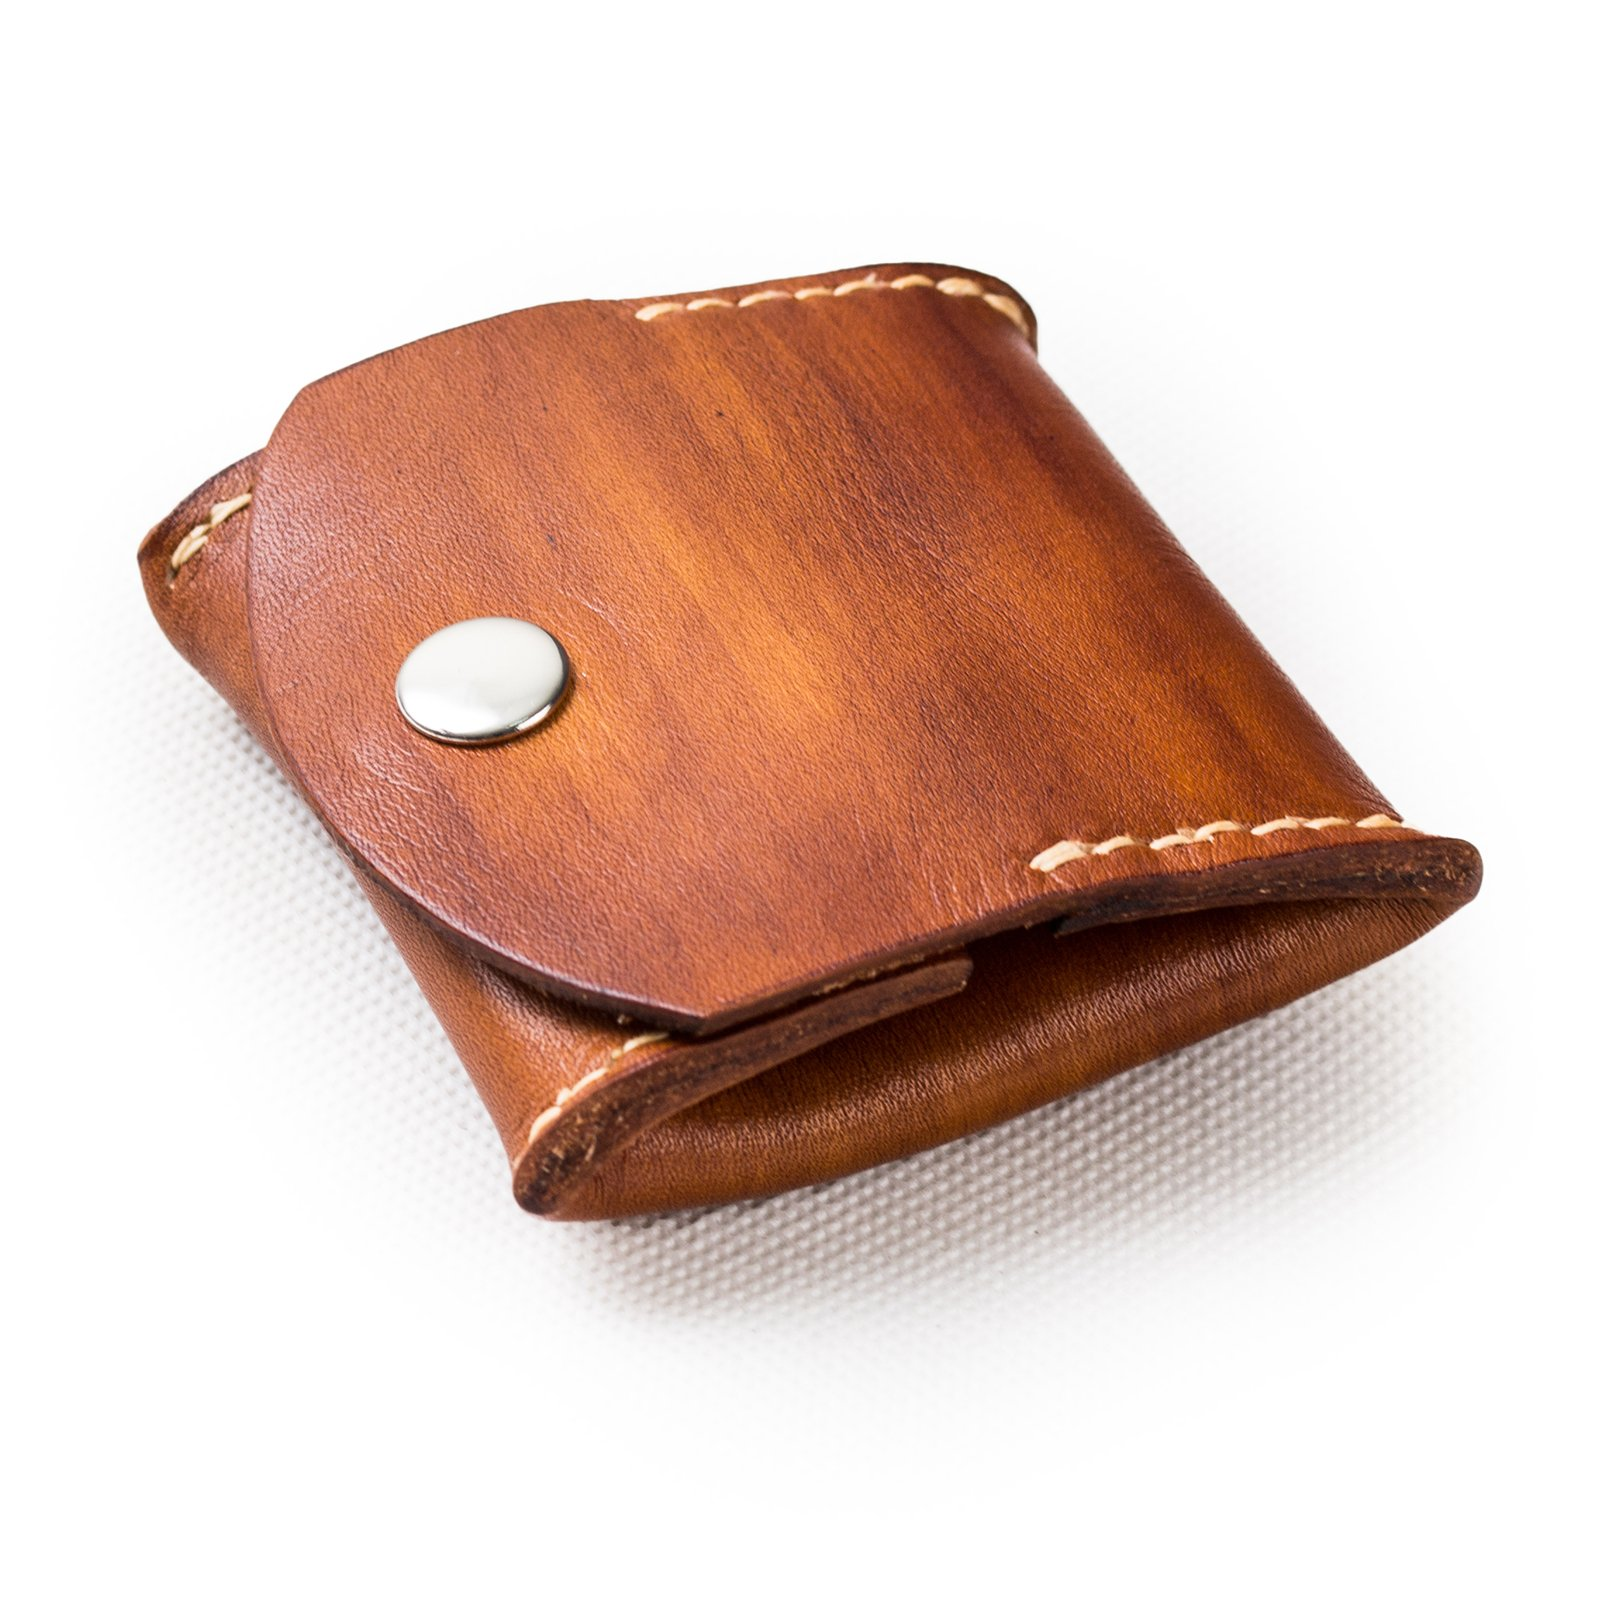 Ancicraft Mens Coin Purse Brown Small Leather Handmade Change Pouch Wallet For Men Women Vintage Gift by Ancicraft